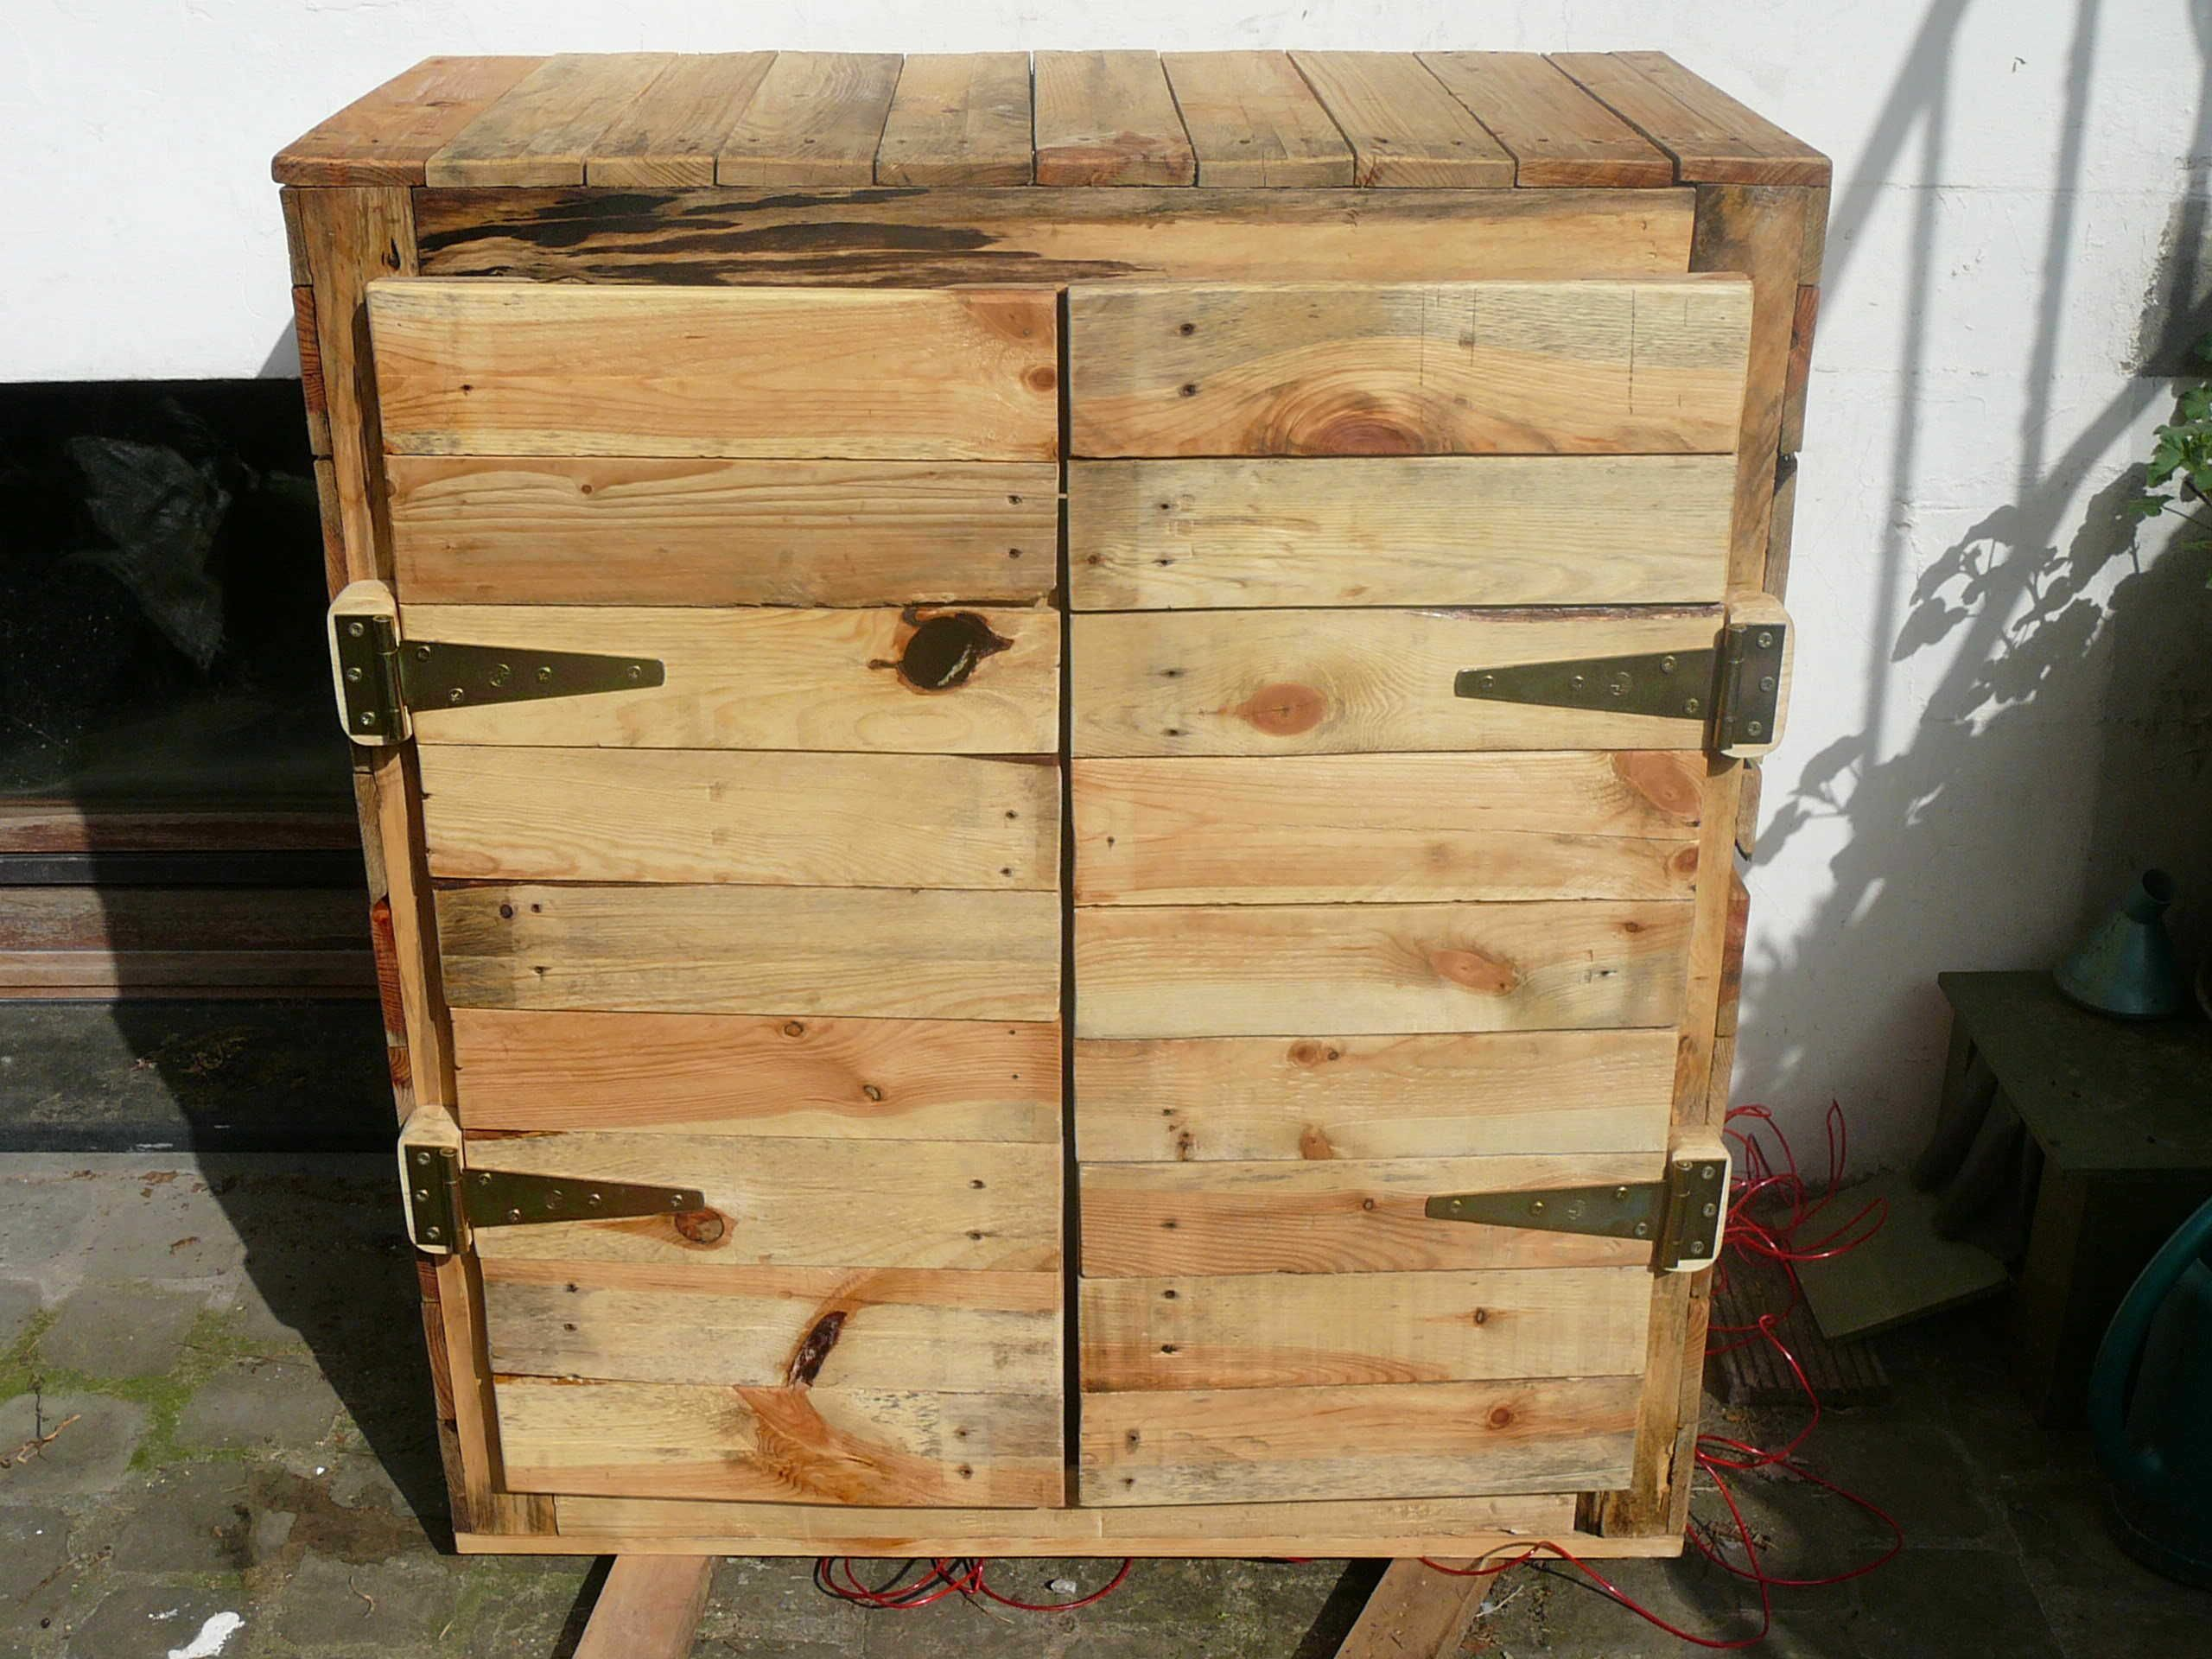 How to make dresser drawers - Nice Upcycled Pallet Dresser Bedroom Dresser Palletcupboard Recyclingwoodpallets Homemade Dresser Made Out